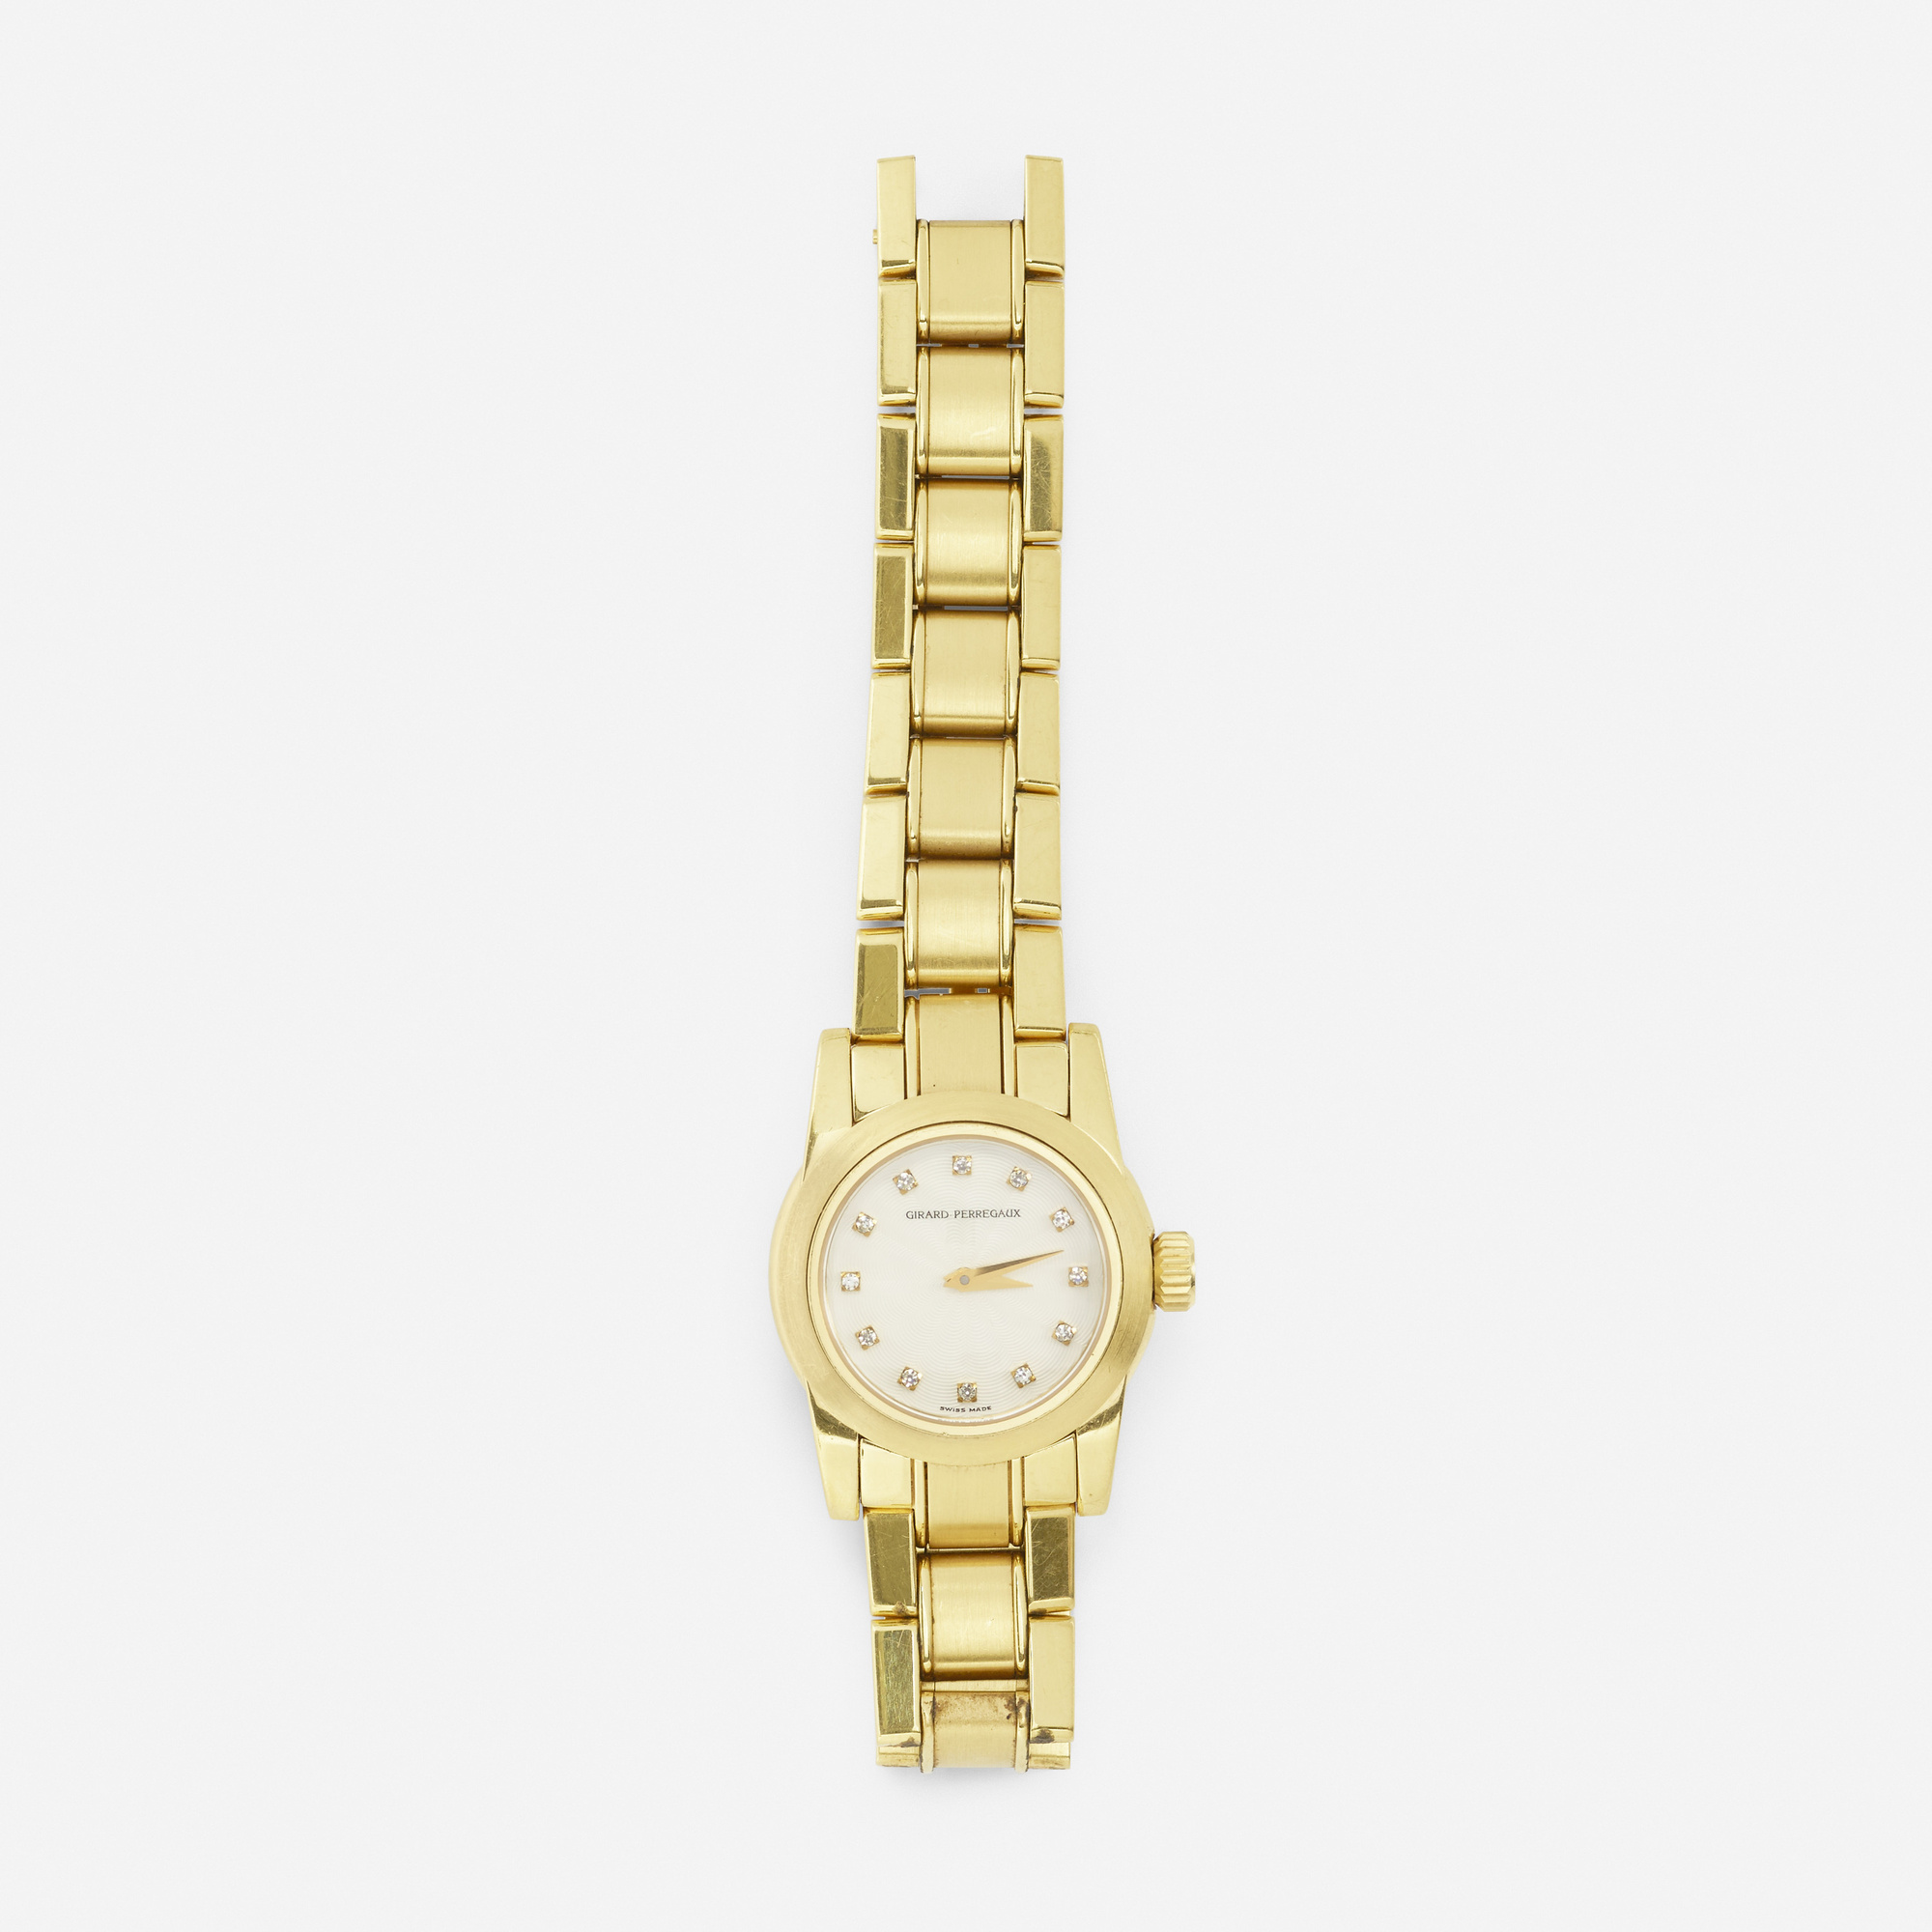 262: Girard-Perregaux / A gold, silver and diamond watch (1 of 1)